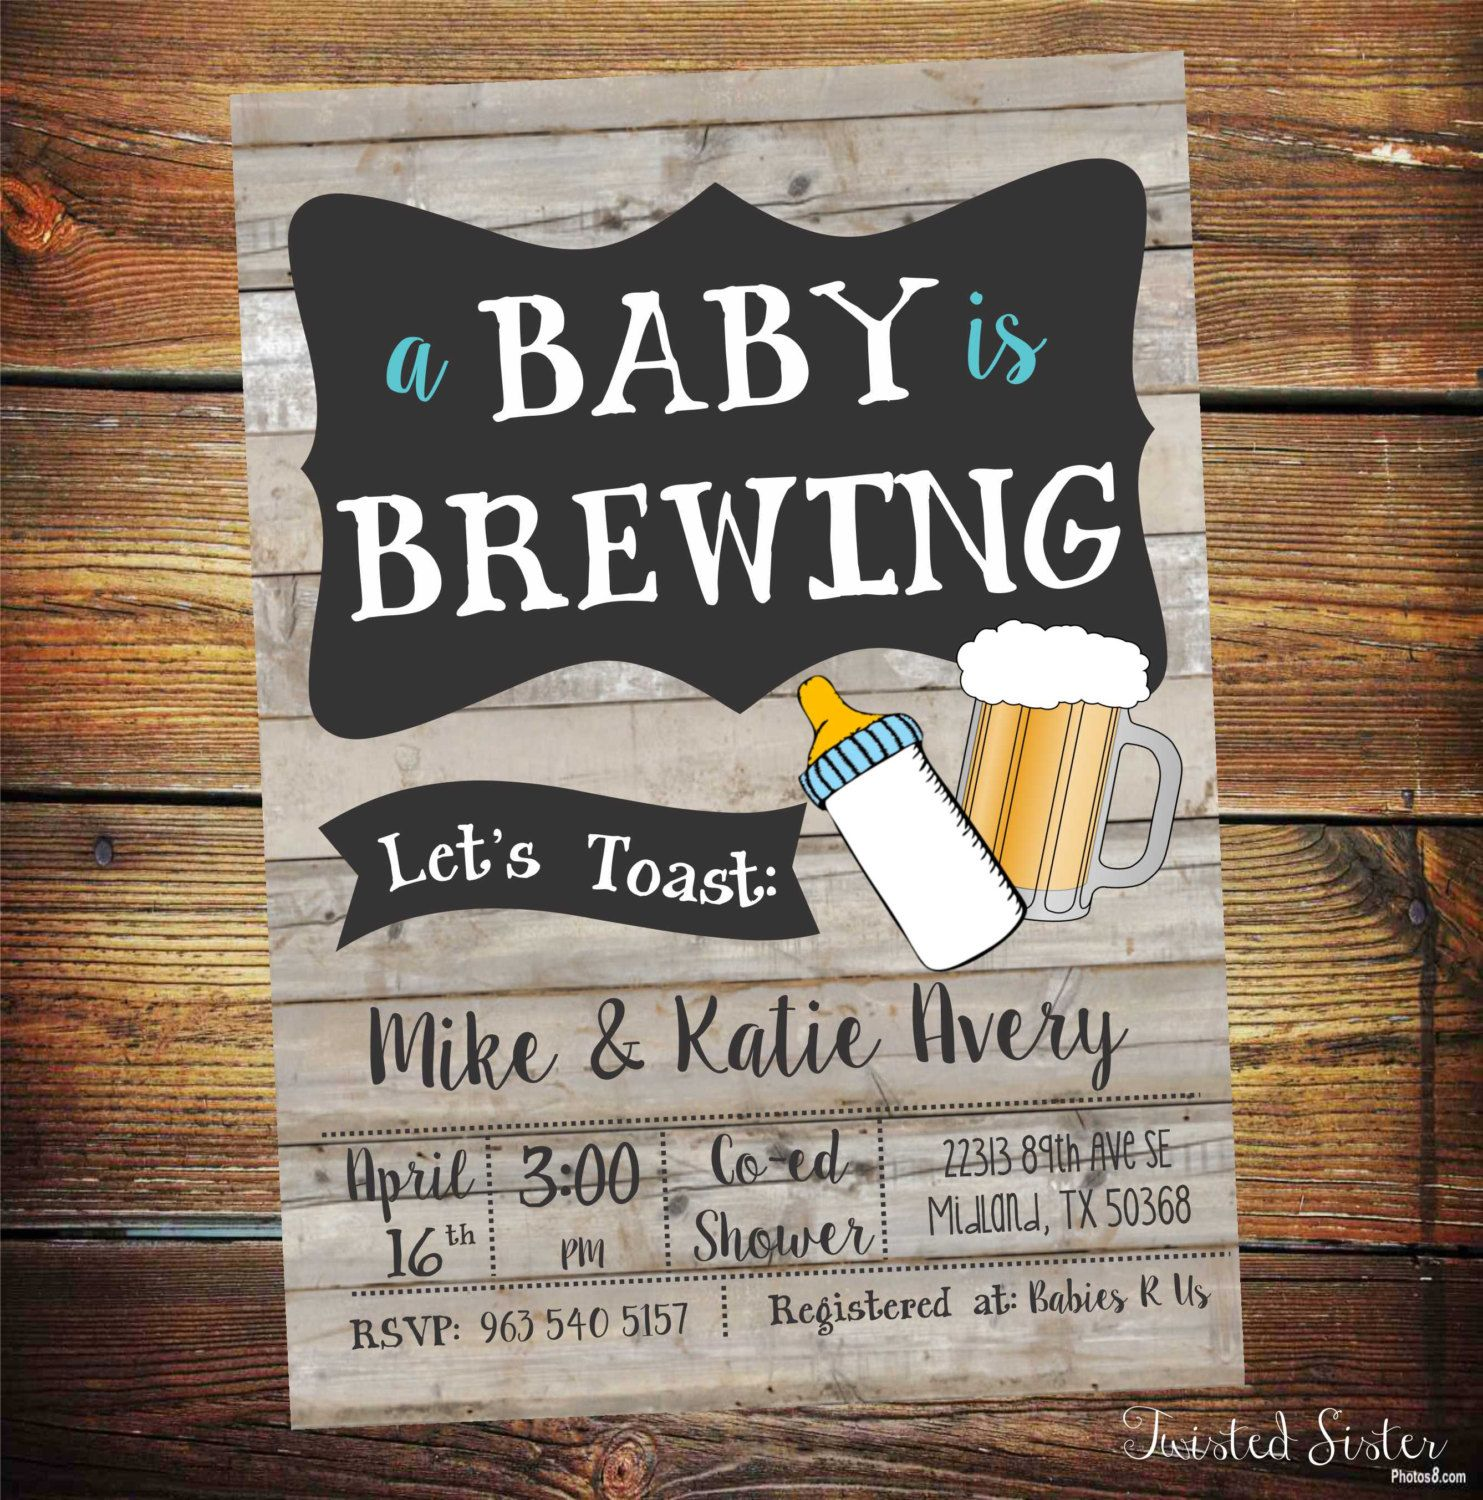 Coed Baby Shower Themes Part - 30: A Baby Is Brewing Invitation, Beer Baby Shower Invitation, Beer Baby Shower,  Co